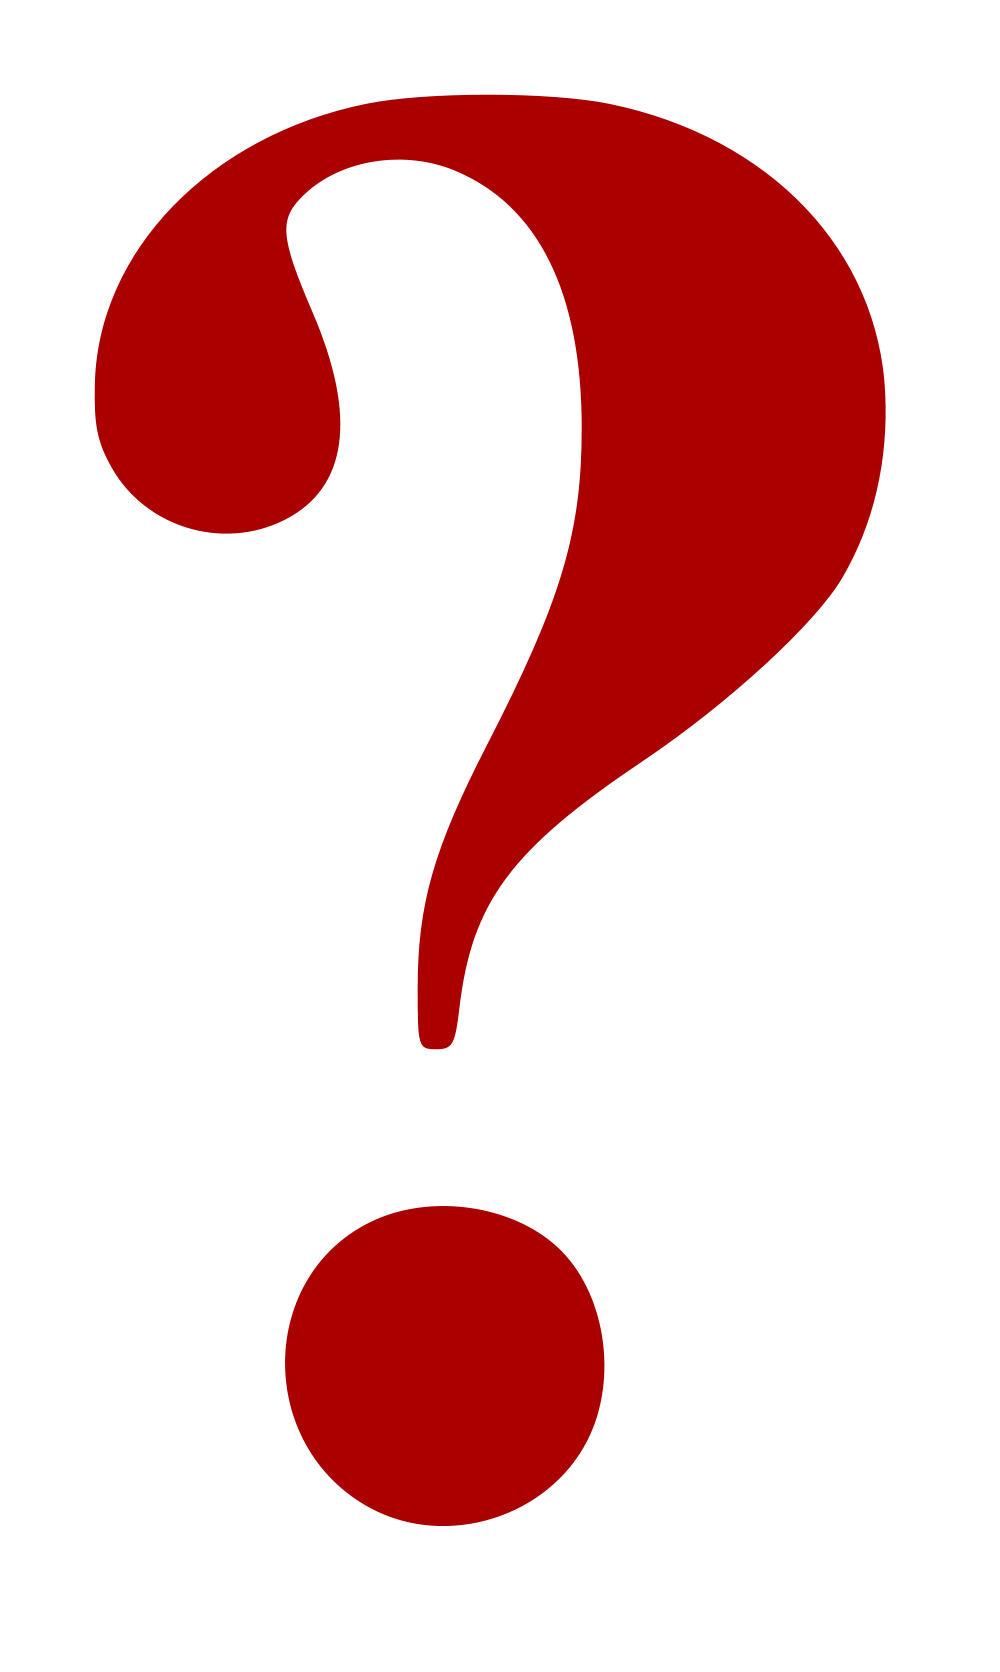 Free Question Mark, Download Free Clip Art, Free Clip Art on Clipart.